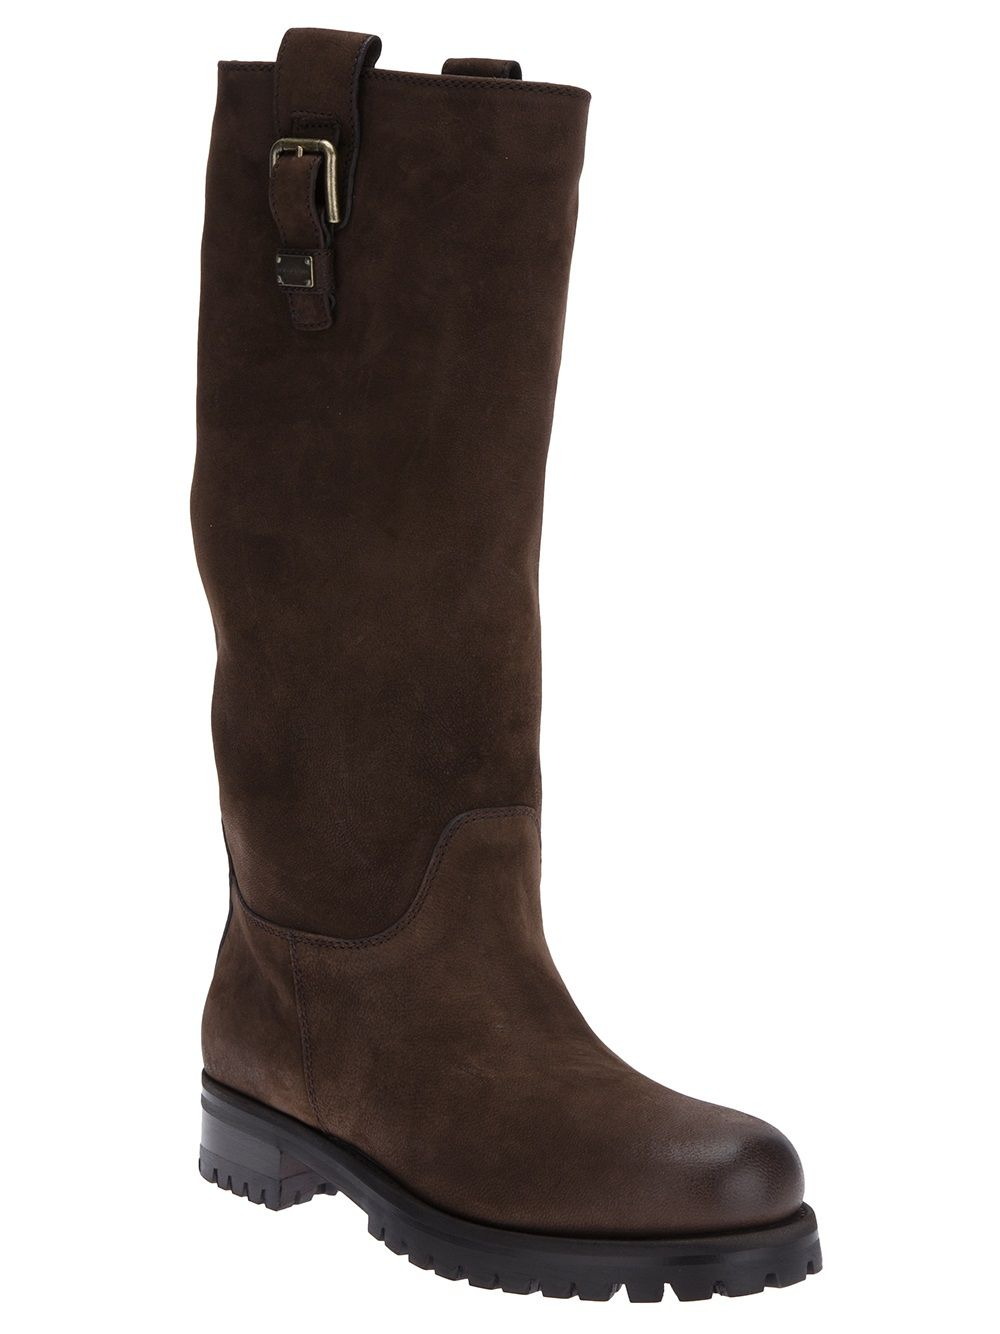 pictures of mid calf boots | ... mid calf boot the love moschino black nubuck leather mid calf boots